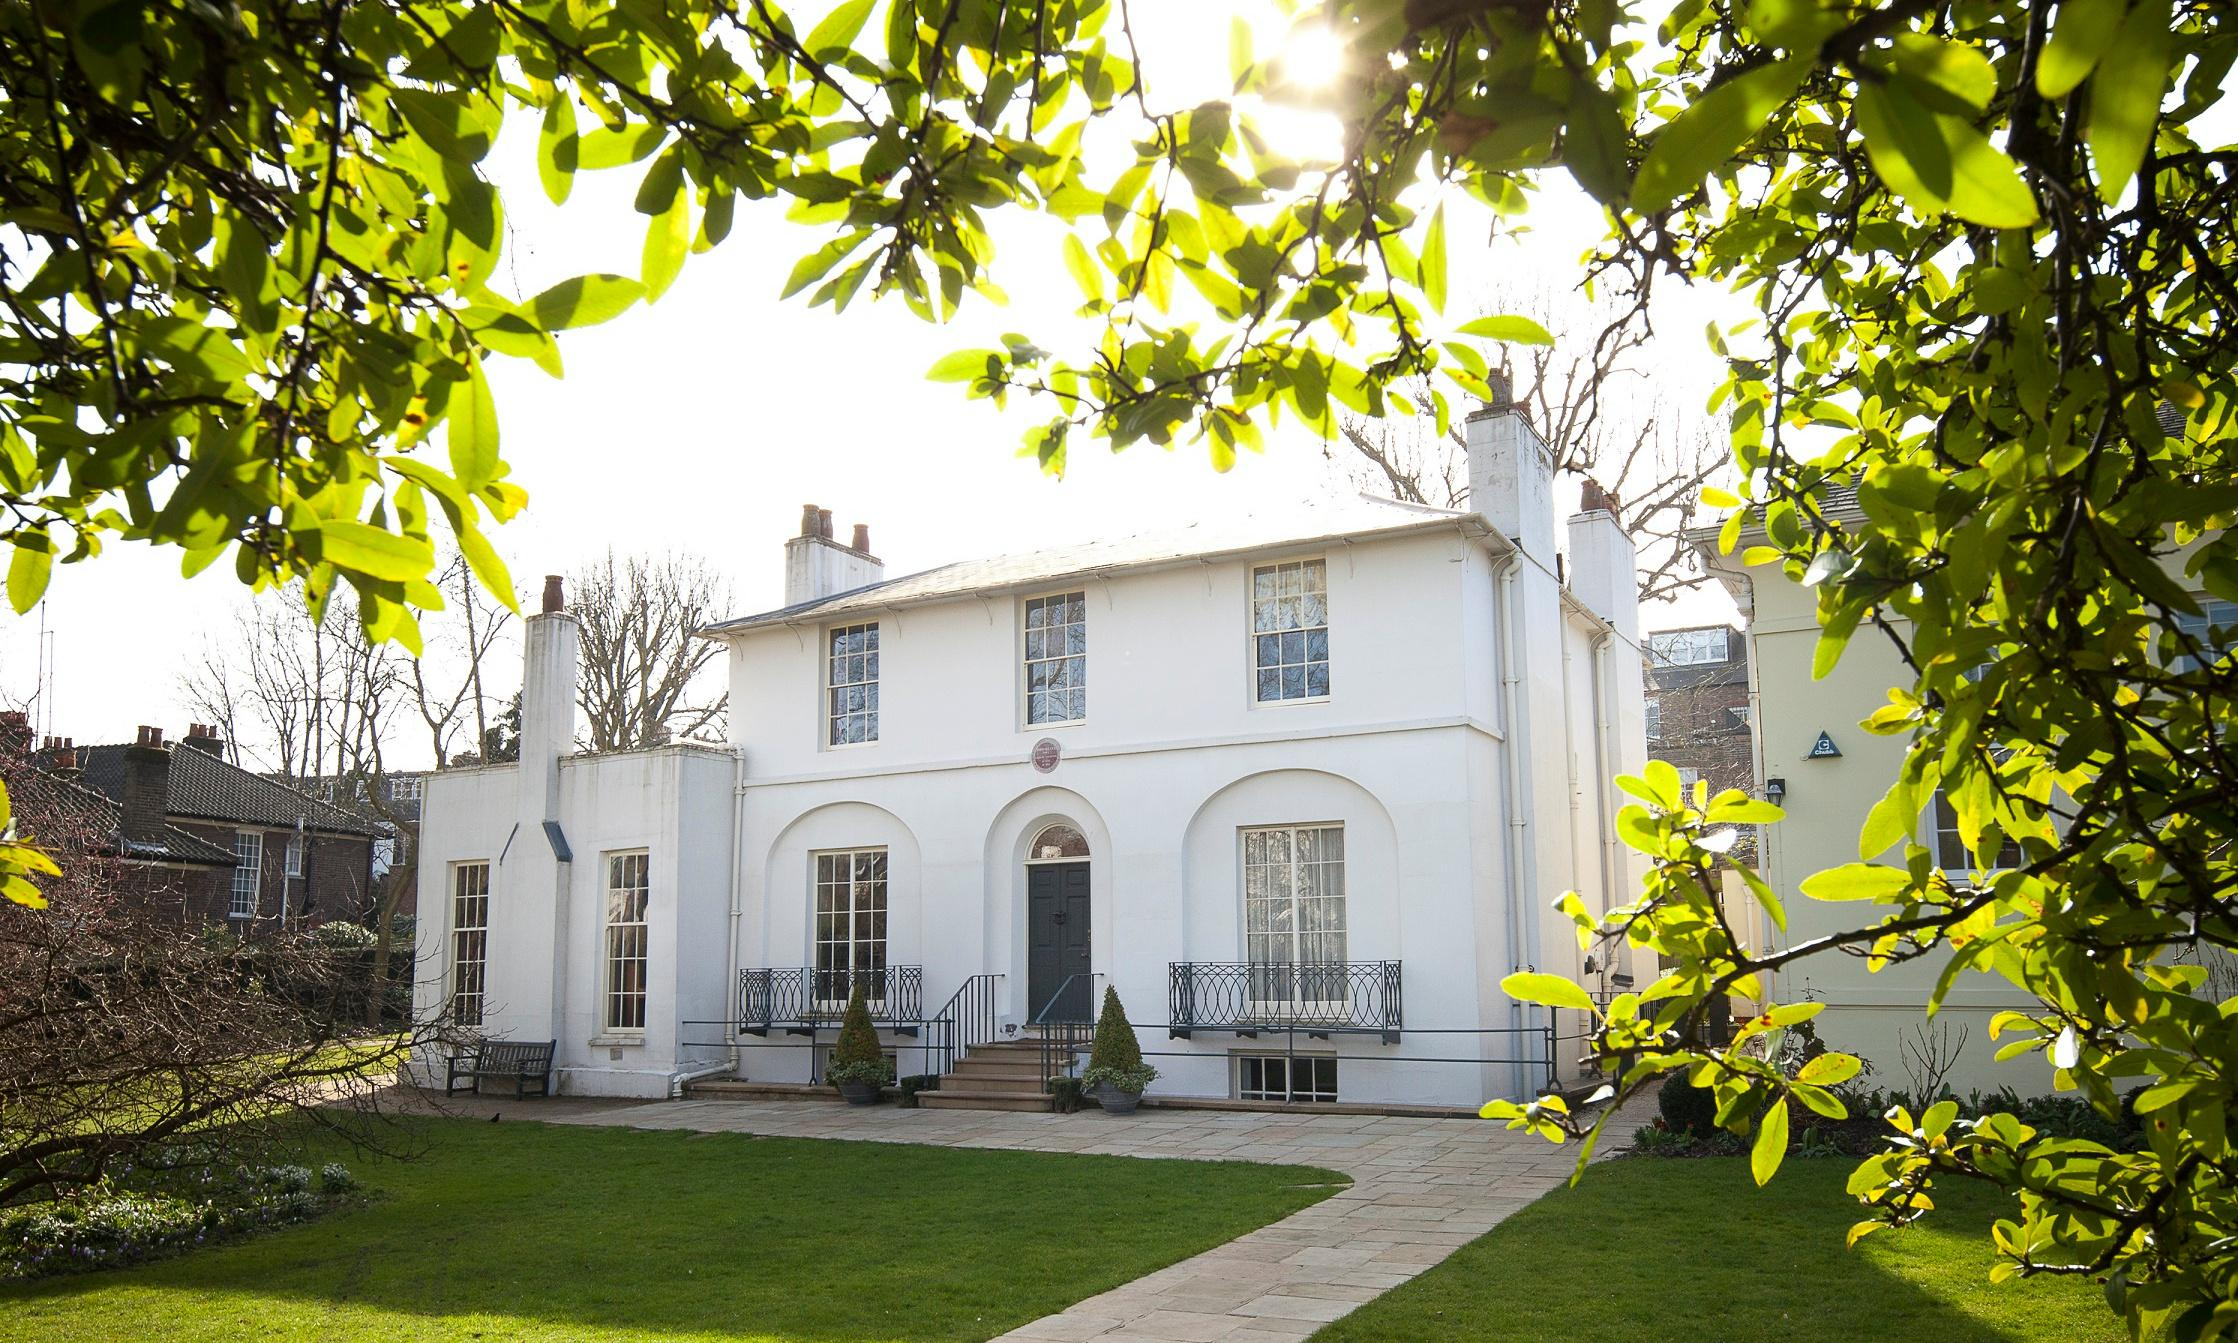 O, for a draught of vintage: Keats House scraps plan to sell alcohol